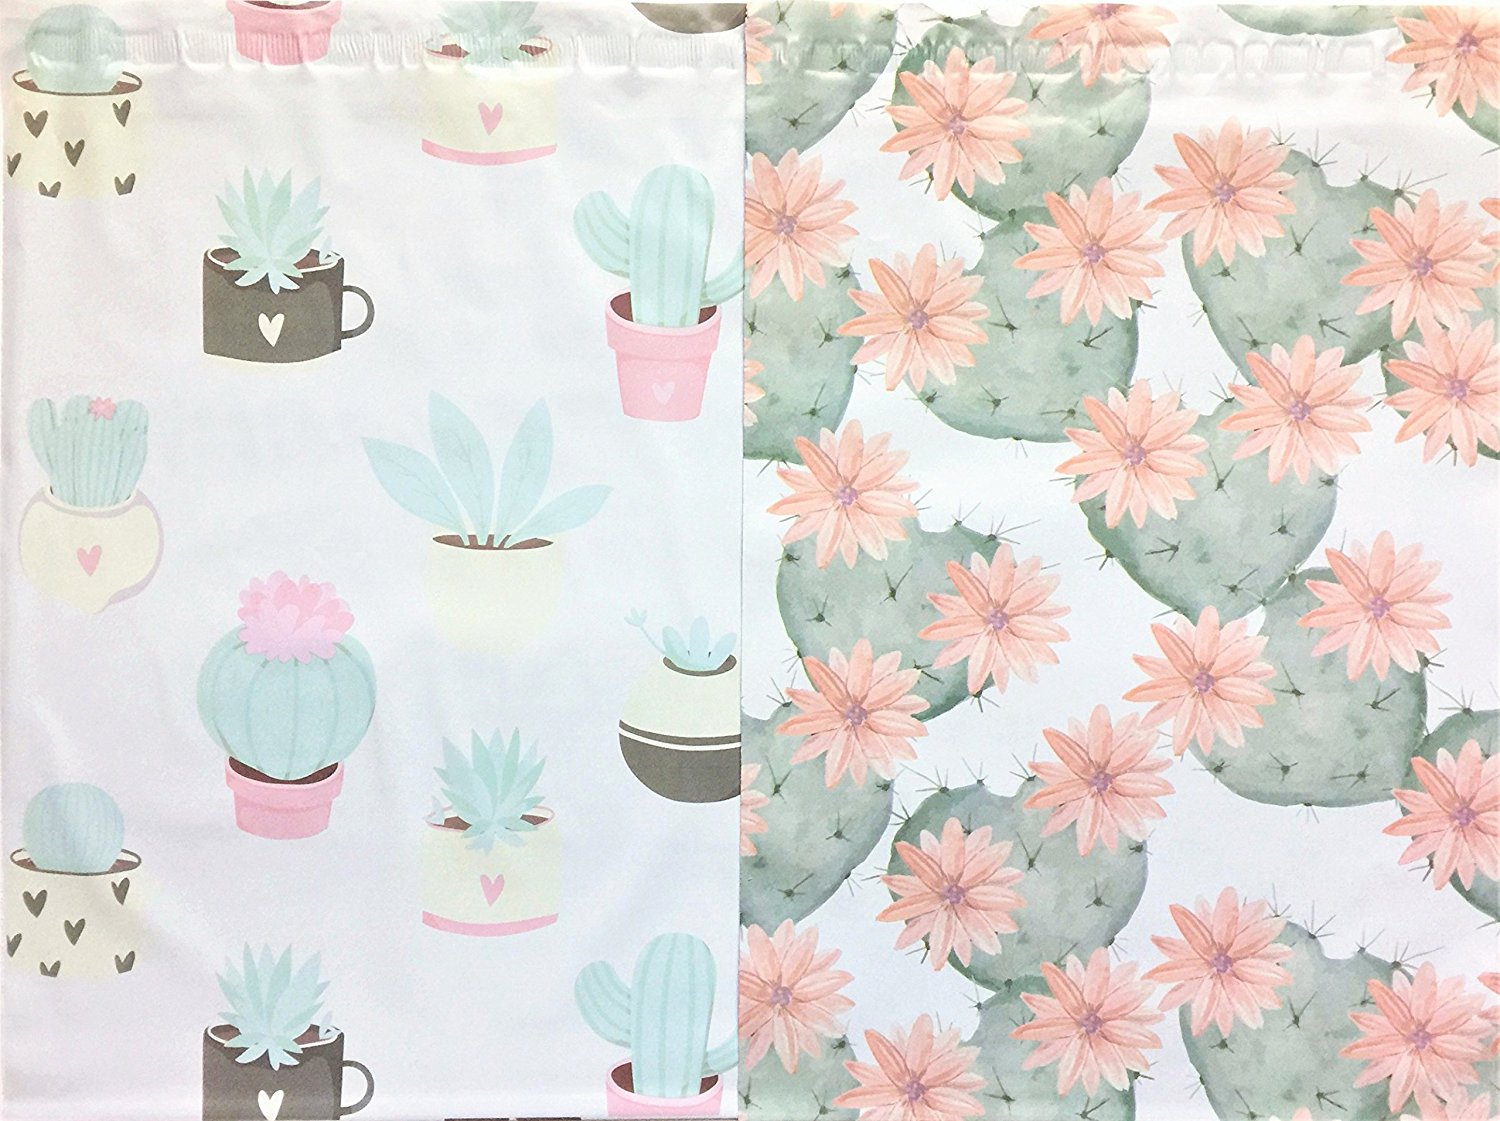 Designer Poly Mailers 10x13 : Pastel Succulent & Floating Cactus Combo; Printed Self Sealing Shipping Poly Envelopes Bag (30 Pcs Total)